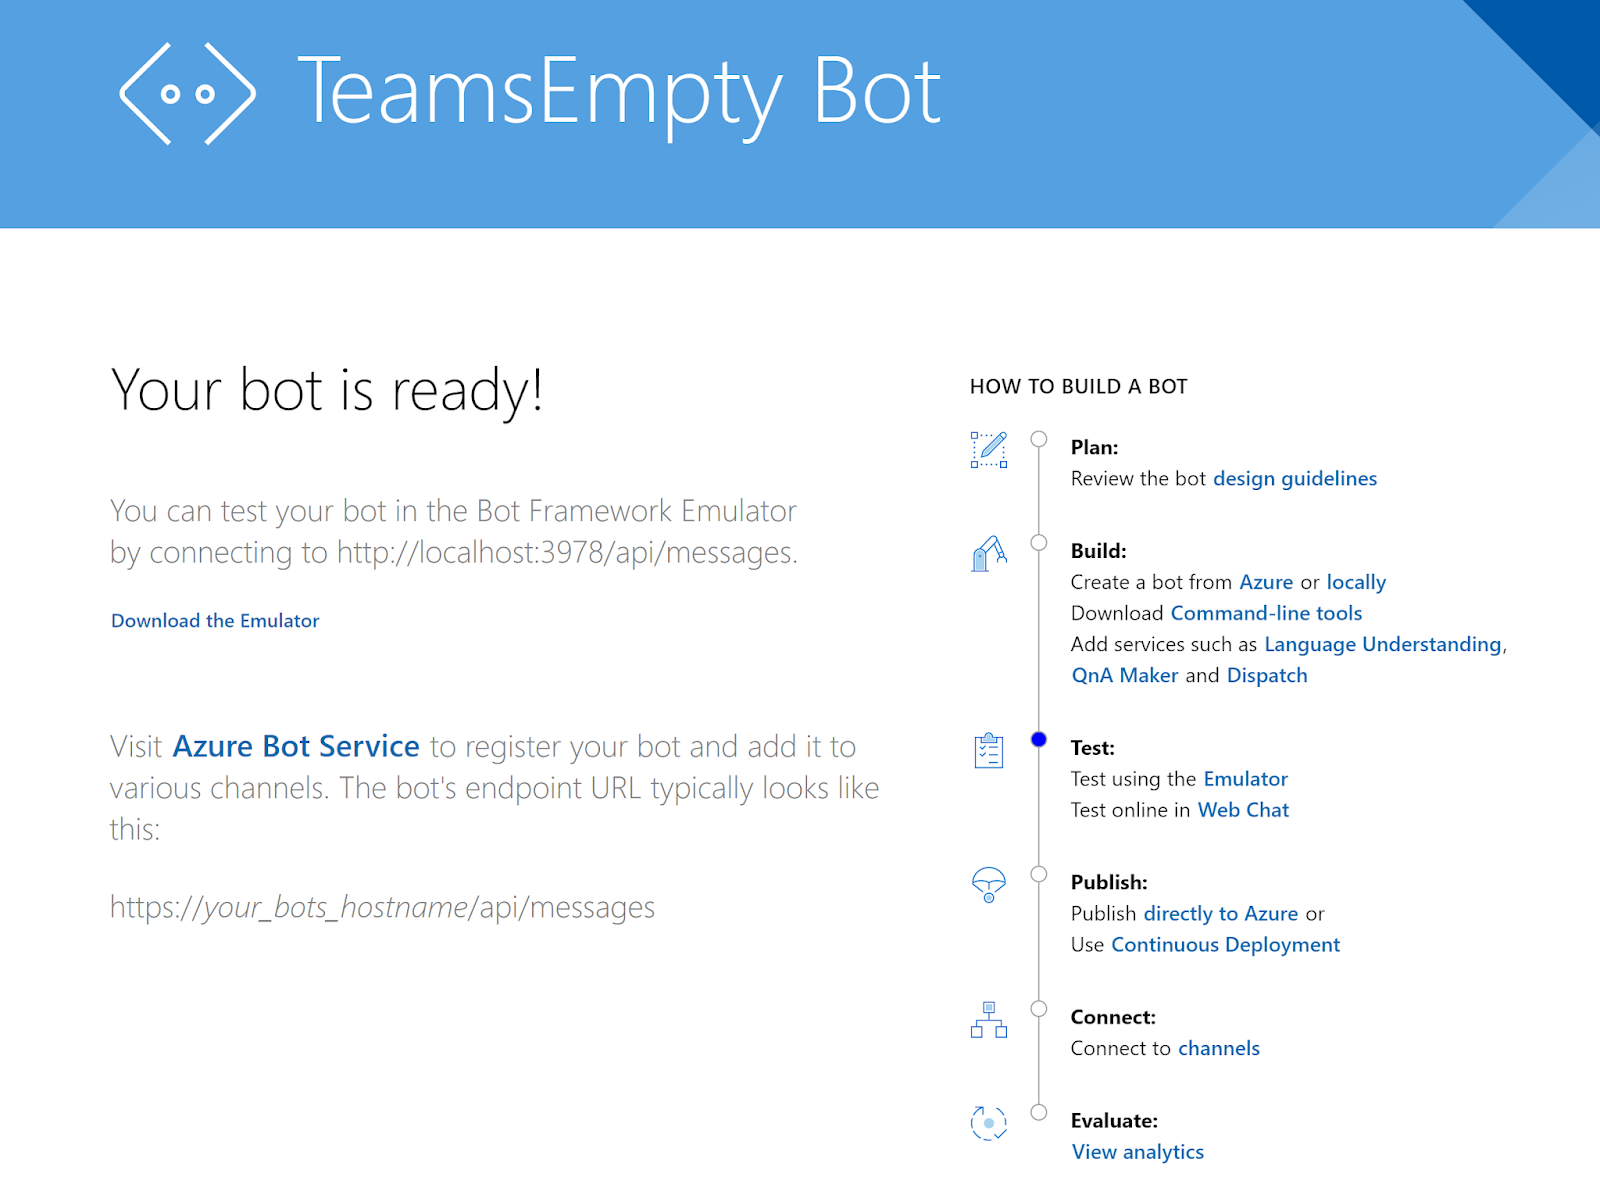 Tricky SharePoint: Step by Step: Configure Bot to Work in Teams and